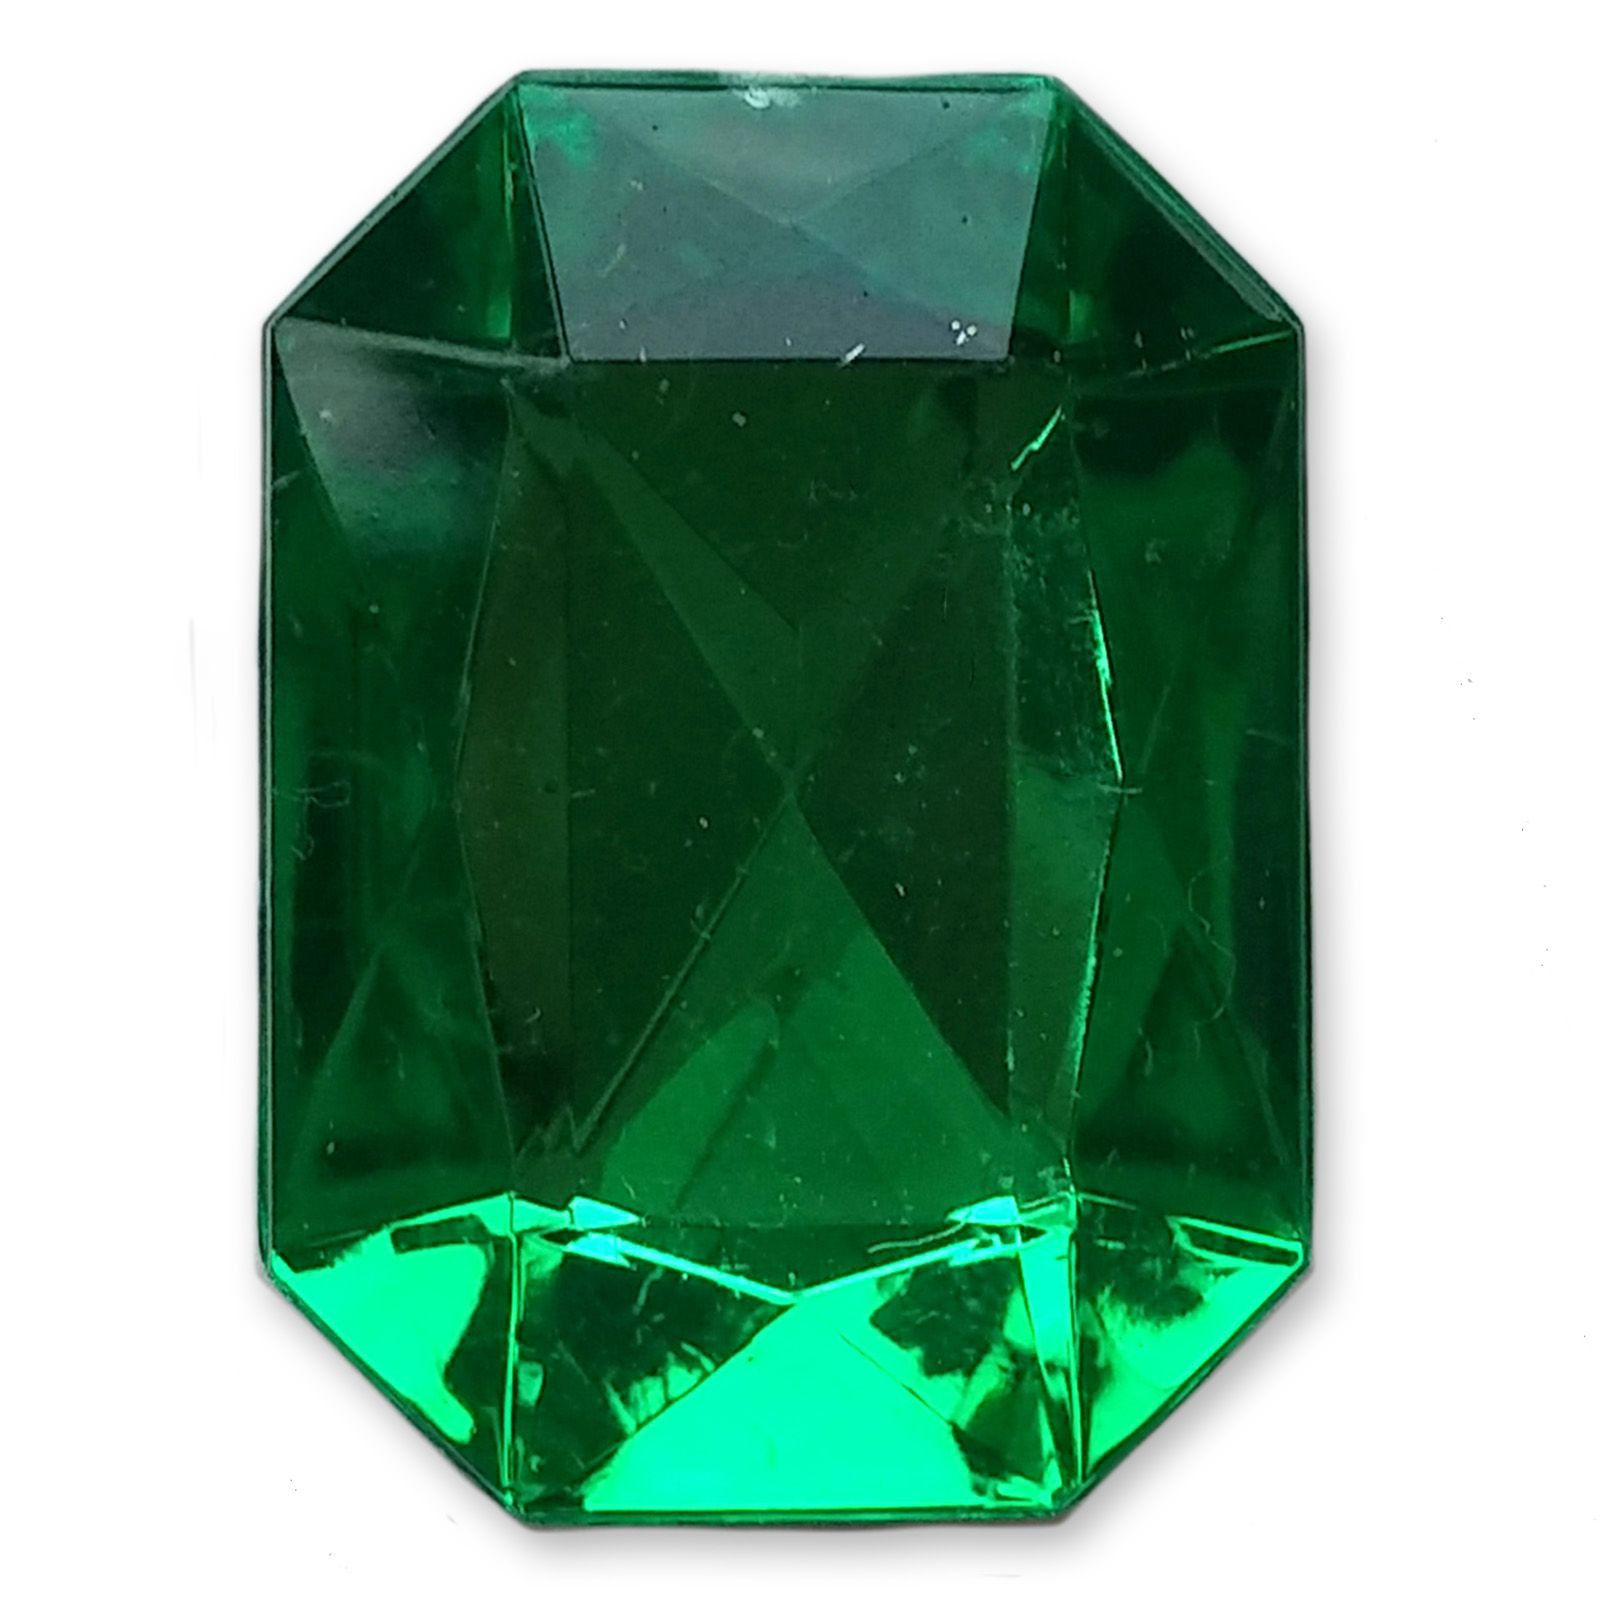 watch green youtube to emerald gemstone slime putty a make elieoops how kryptonite